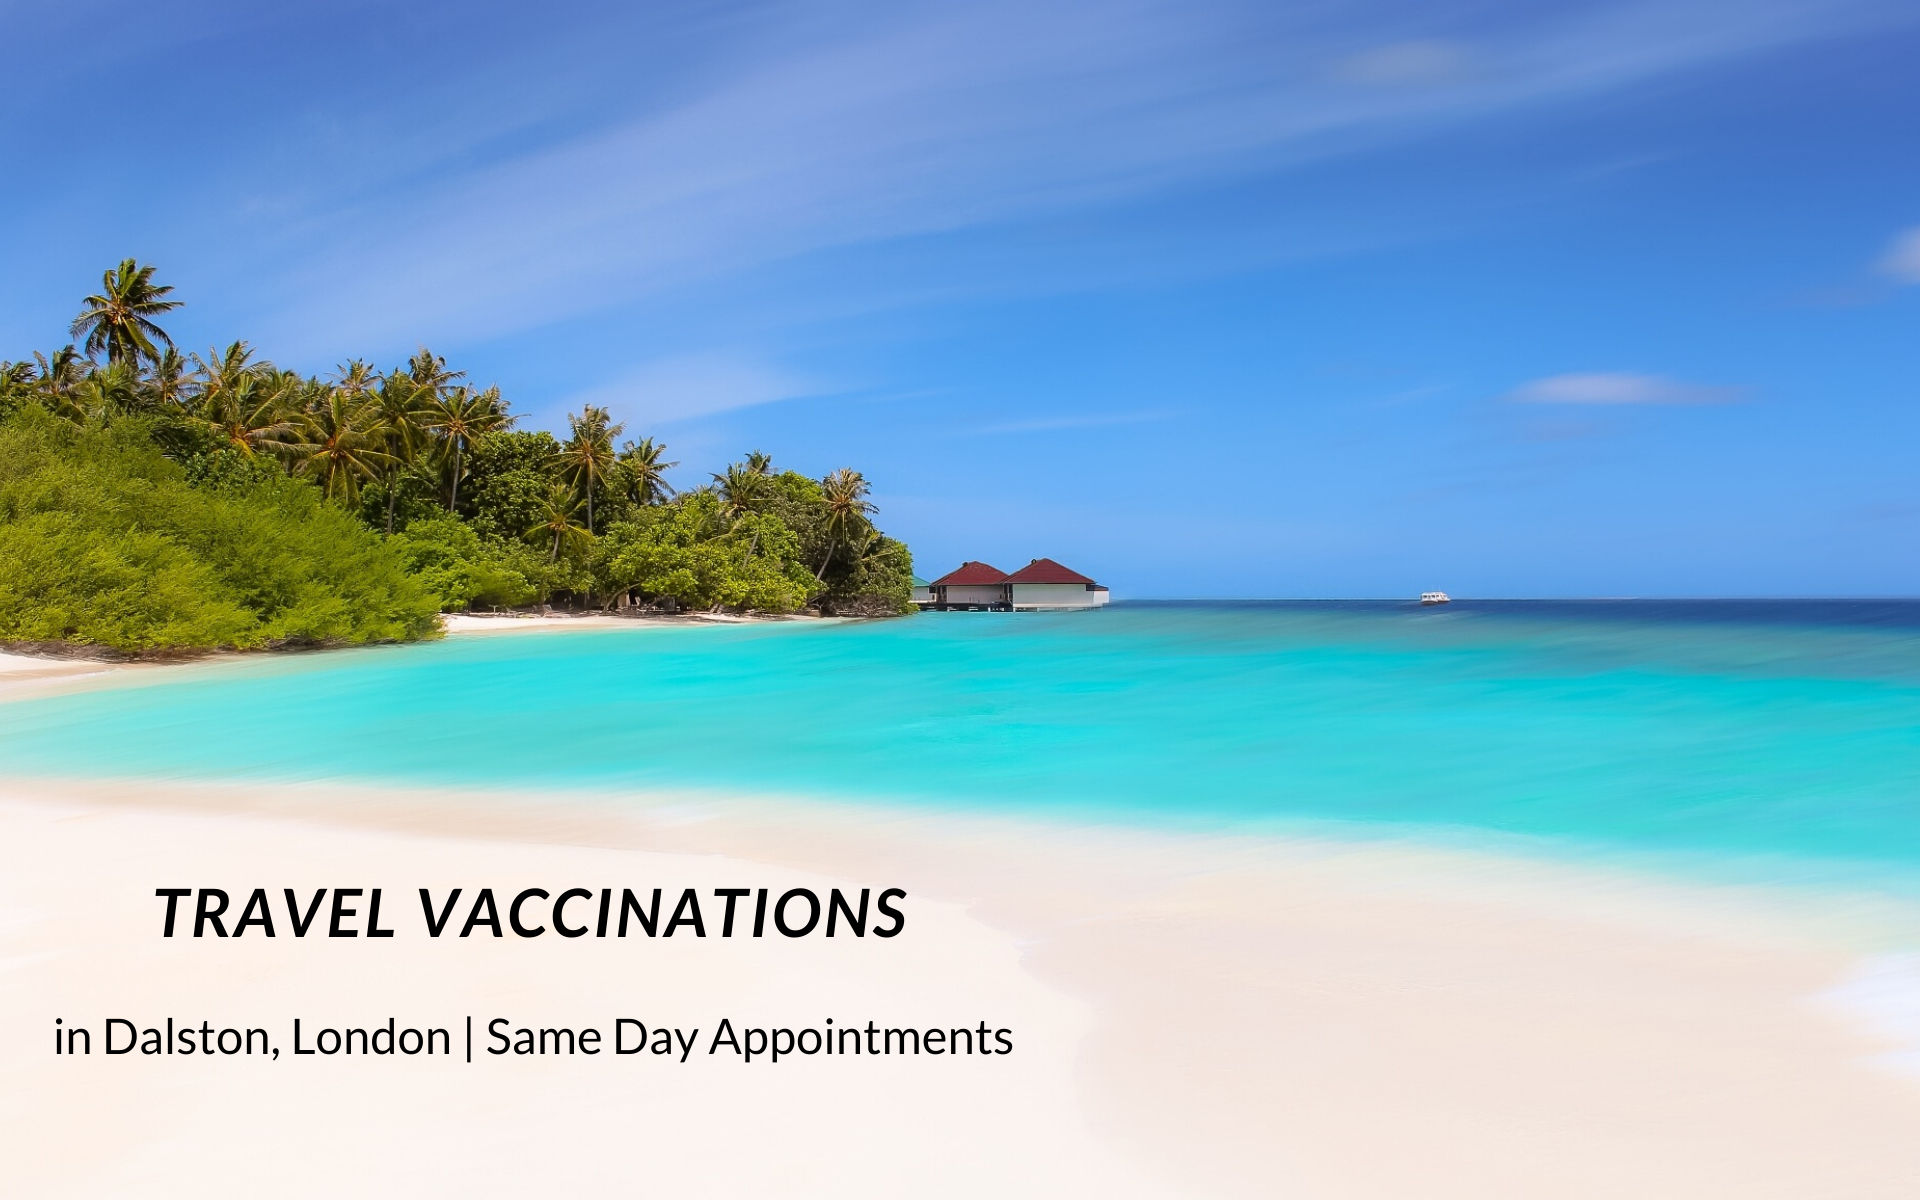 Travel vaccinations in Dalston, London. Why having travel vaccinations is important?